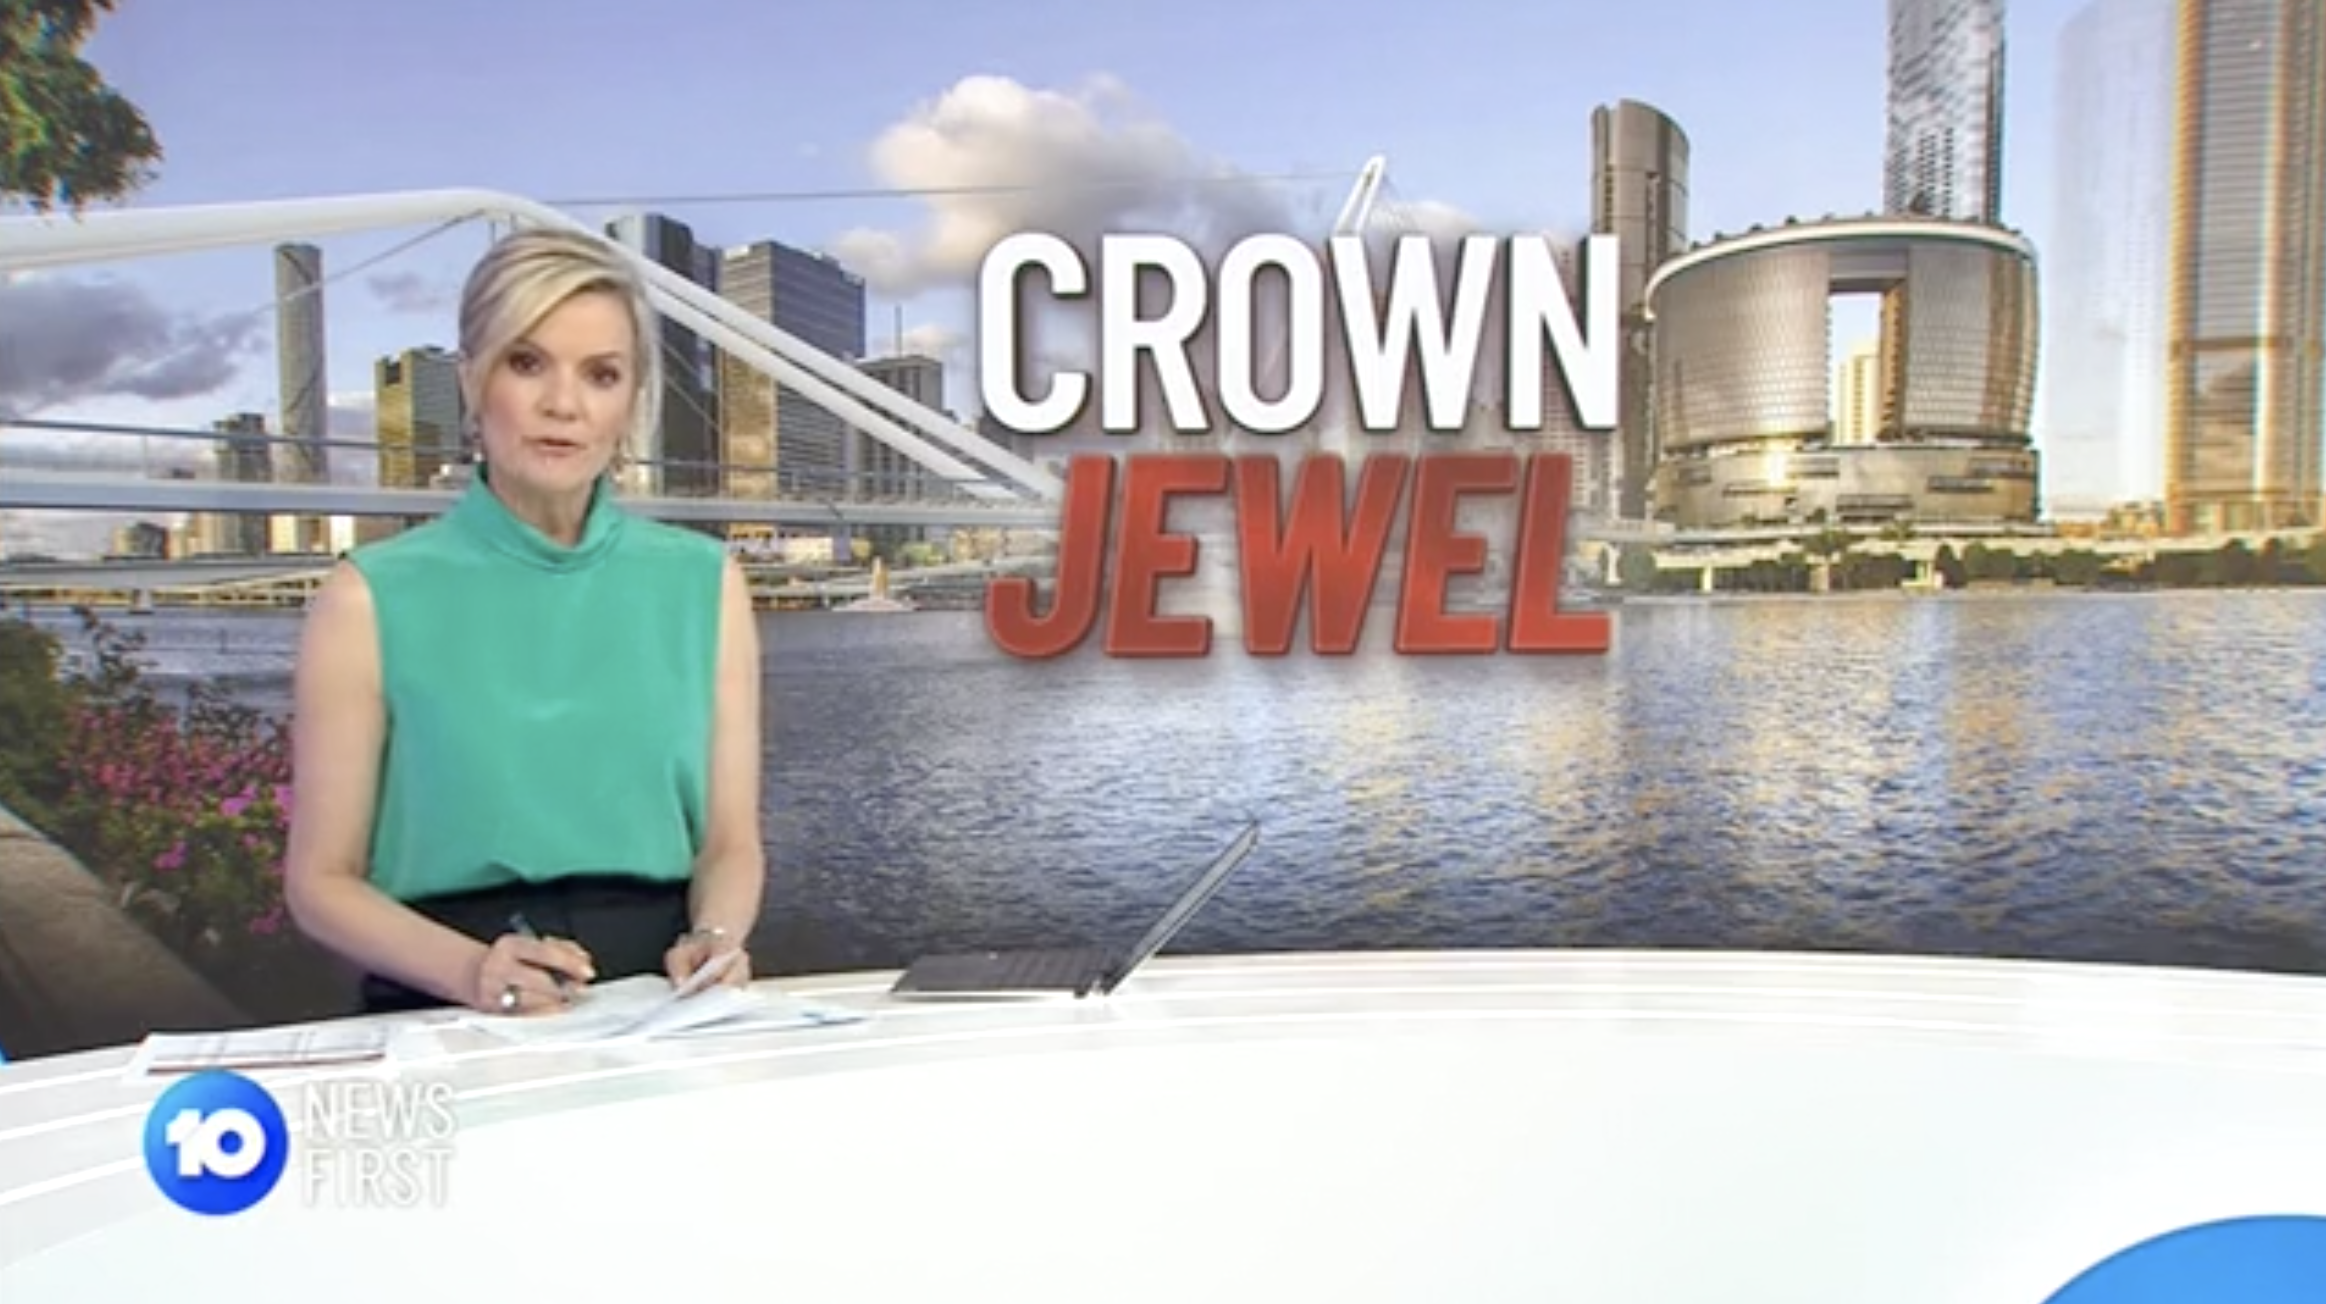 Latest updates on the Queen's Wharf Brisbane project on Channel 10 News